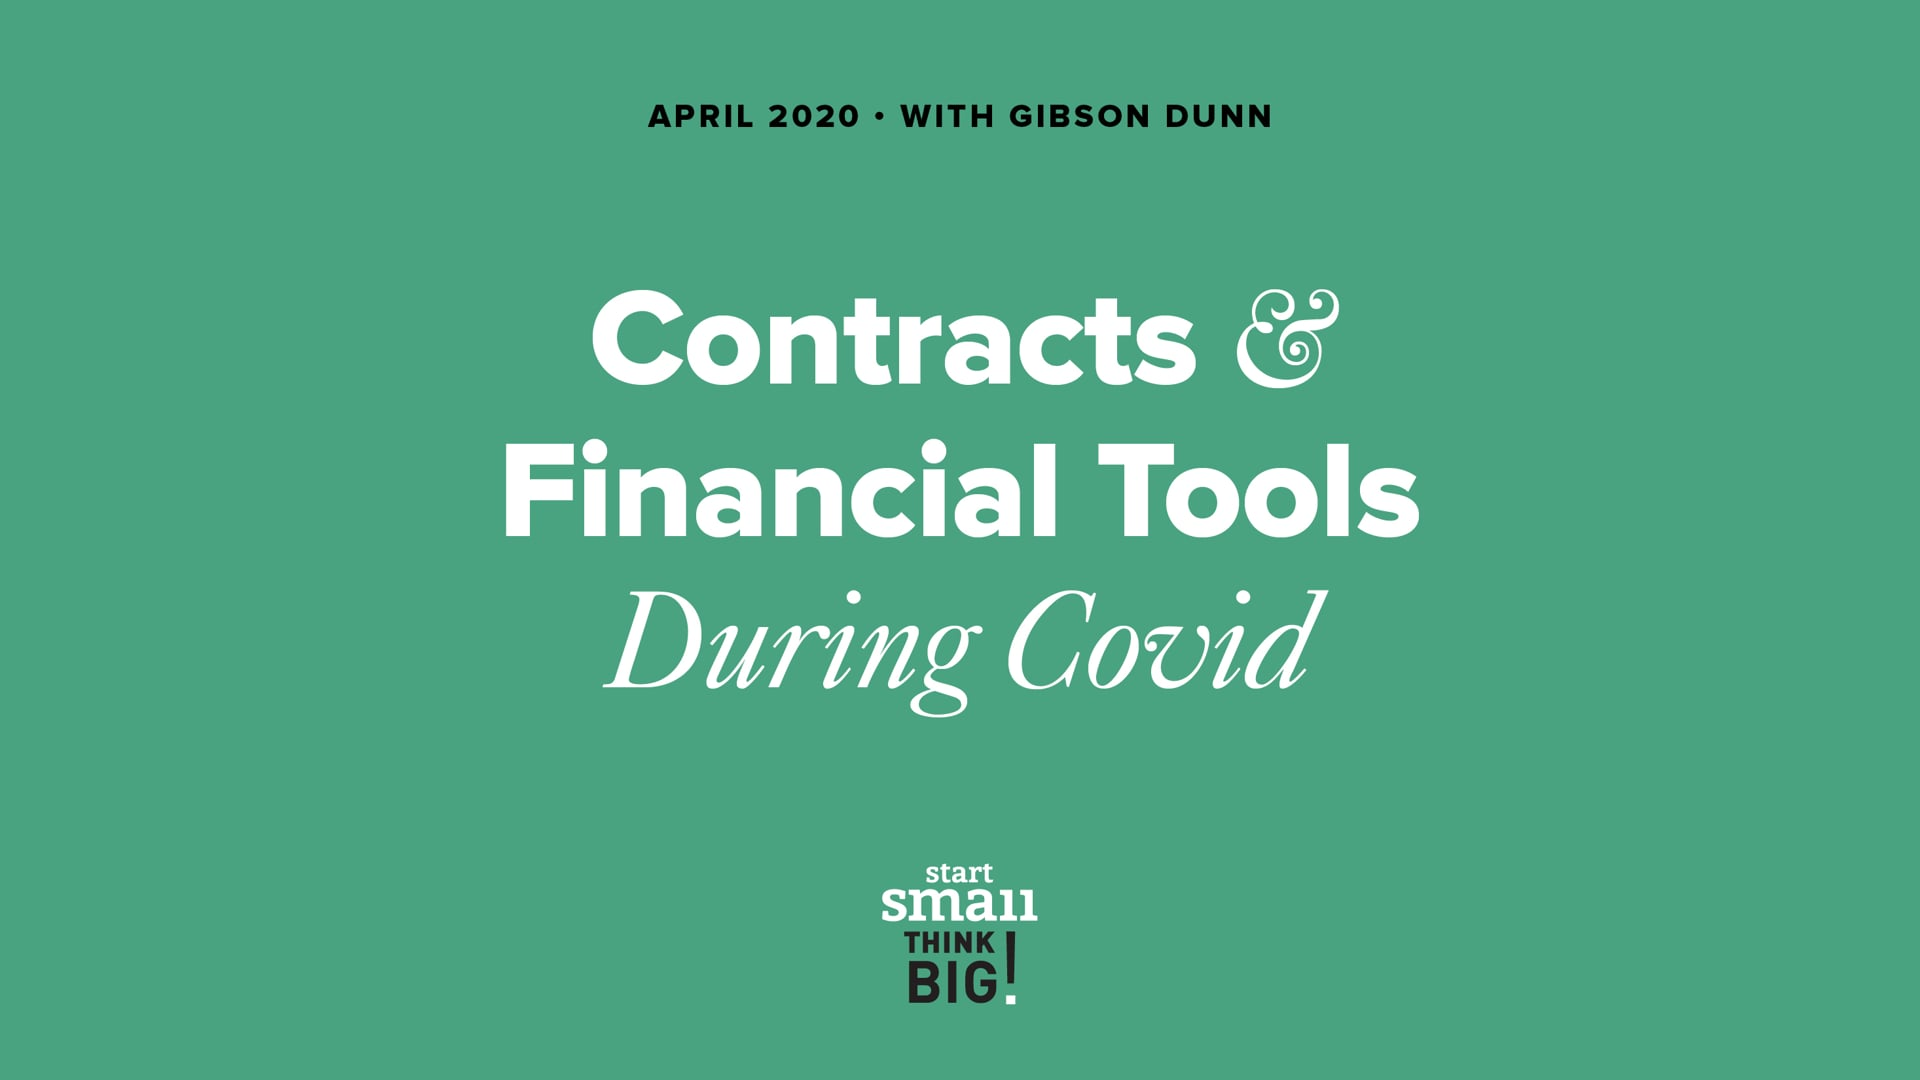 COVID-19 Management: Contracts and Financial Tools